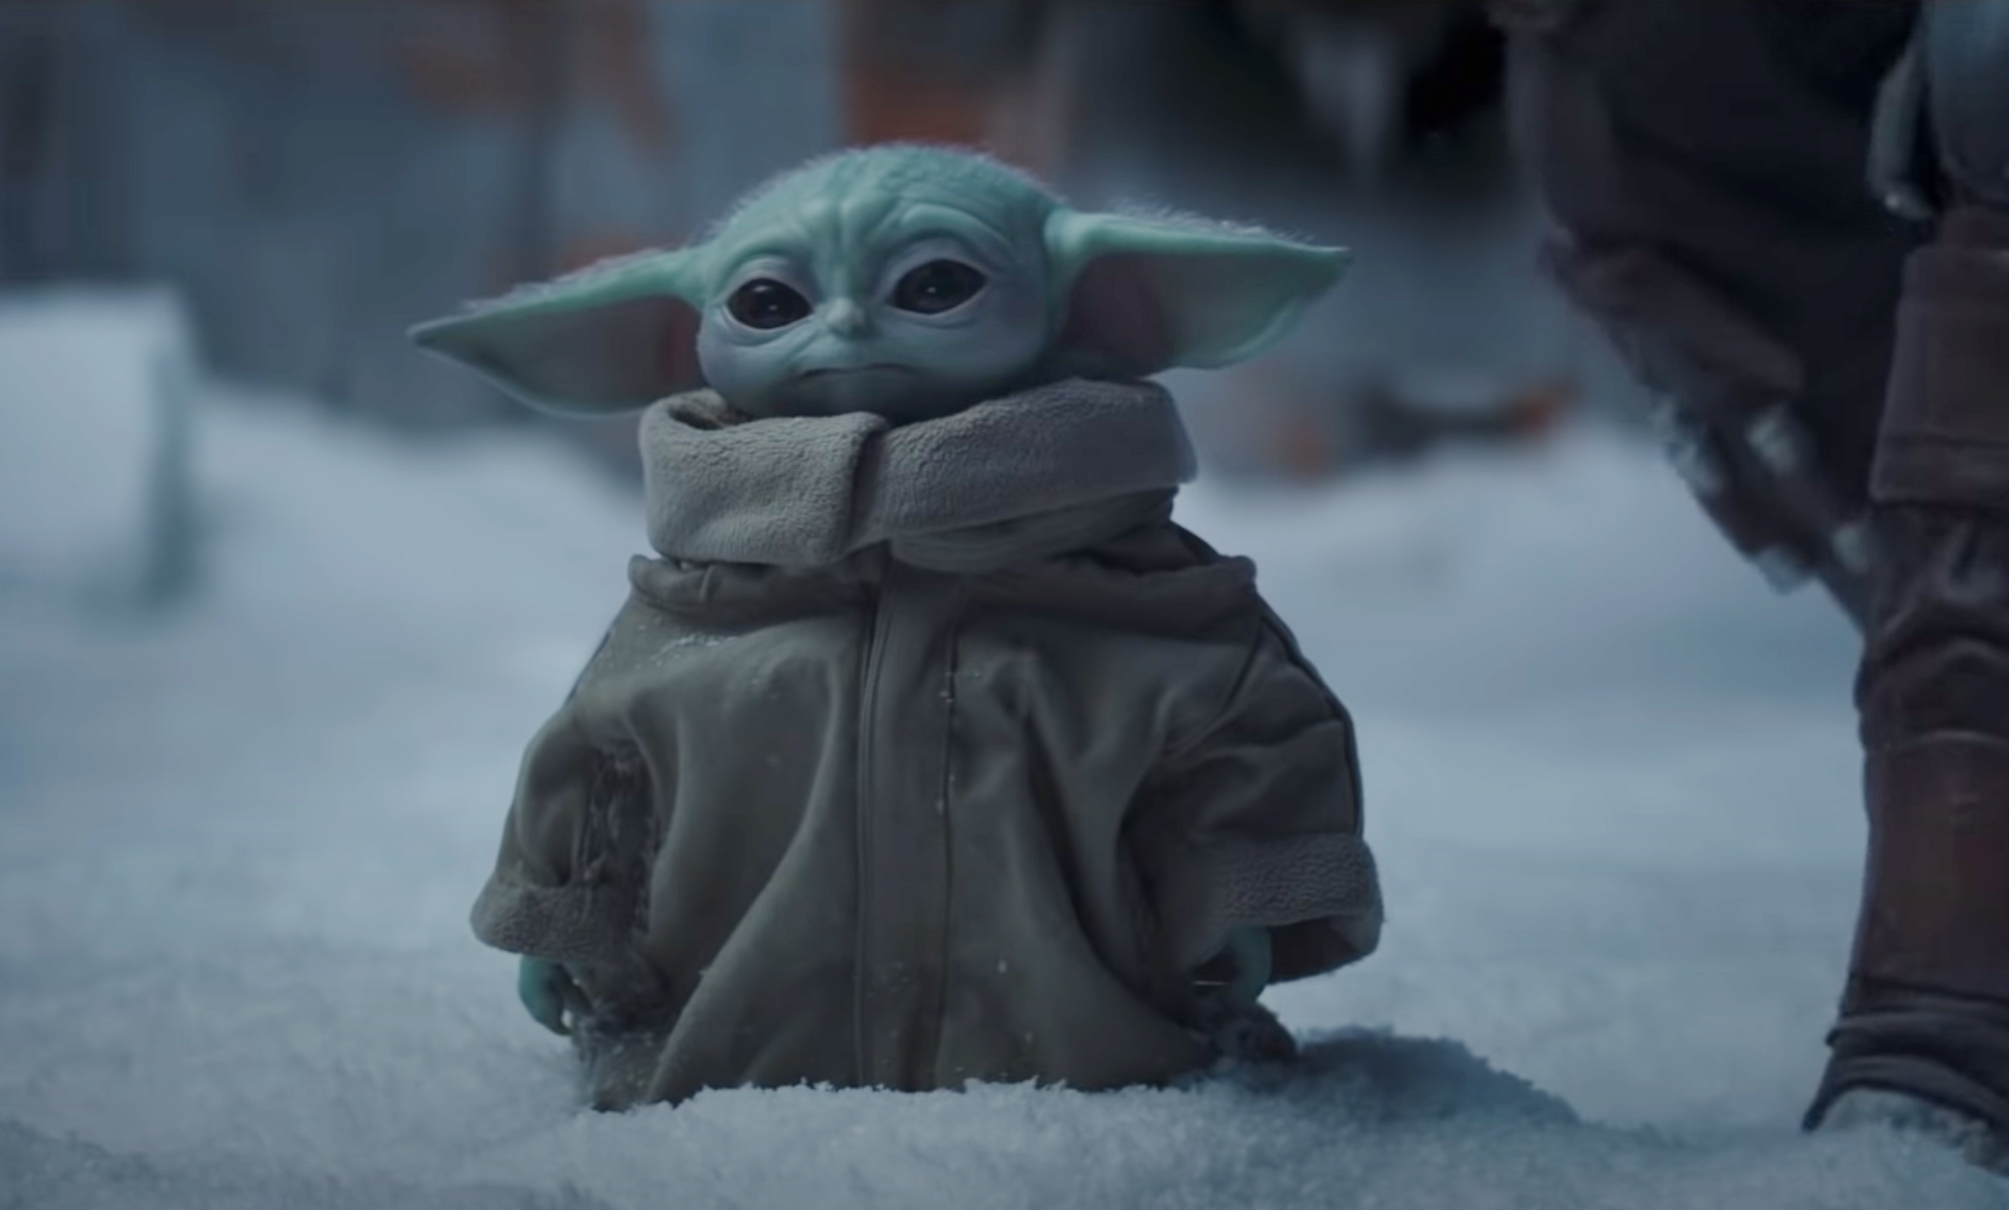 What S Baby Yoda S Real Name The Child S Identity Is Finally Revealed On The Mandalorian Pennlive Com